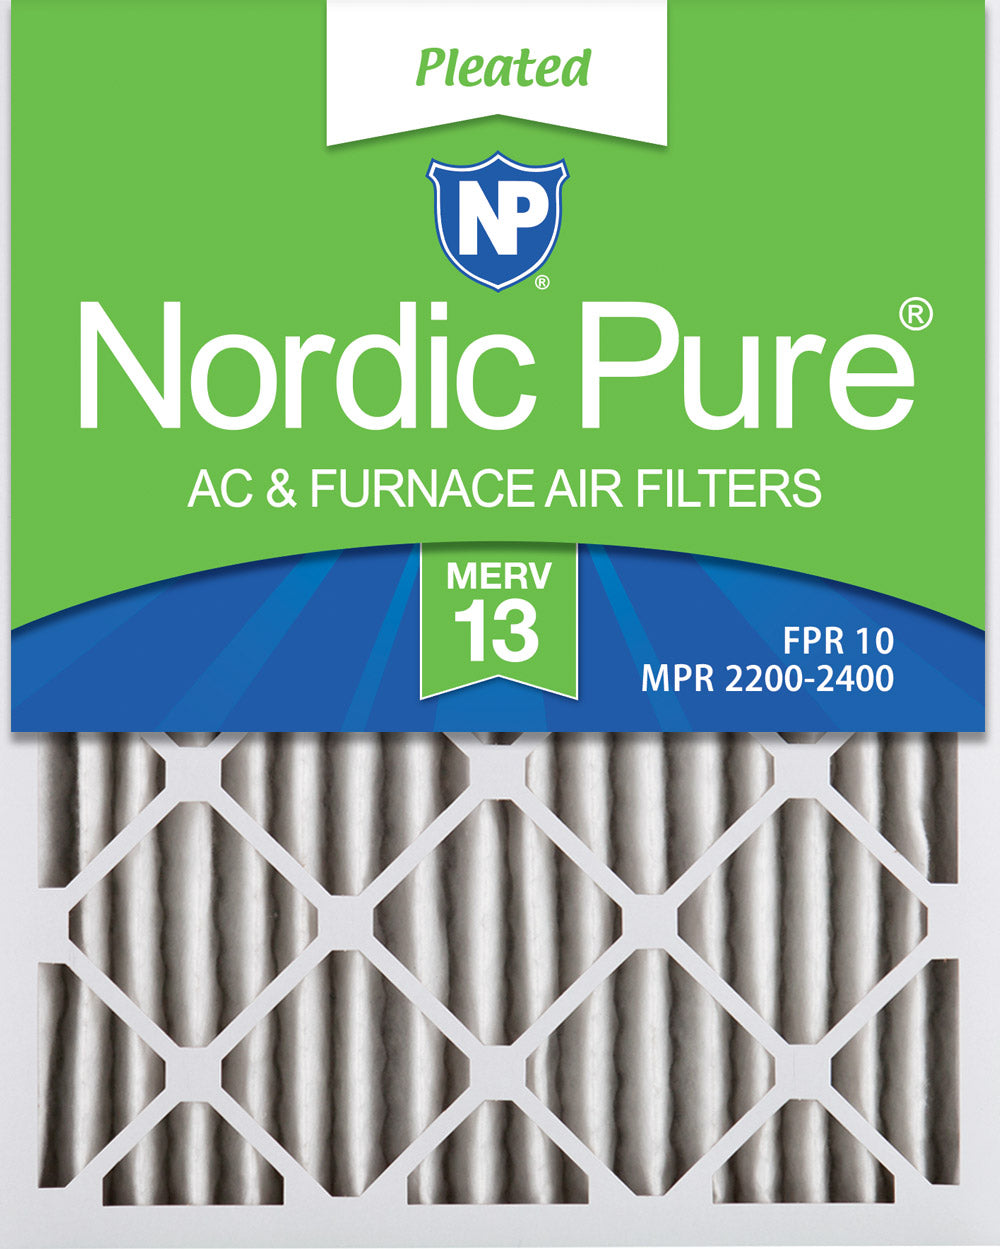 16x20x2 Pleated MERV 13 Air Filters 3 Pack